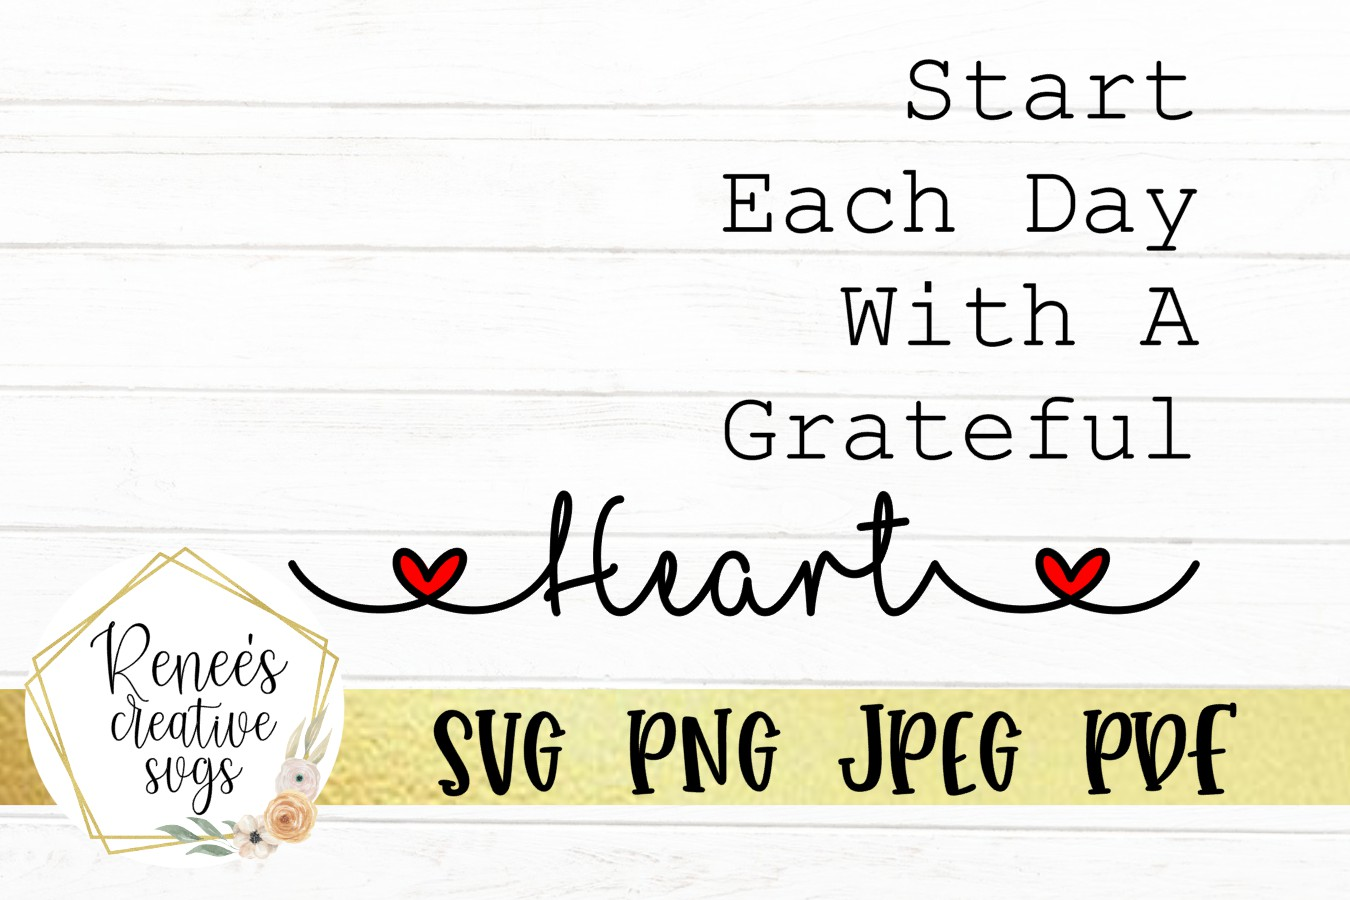 Start Each Day With A Grateful Heart Graphic By